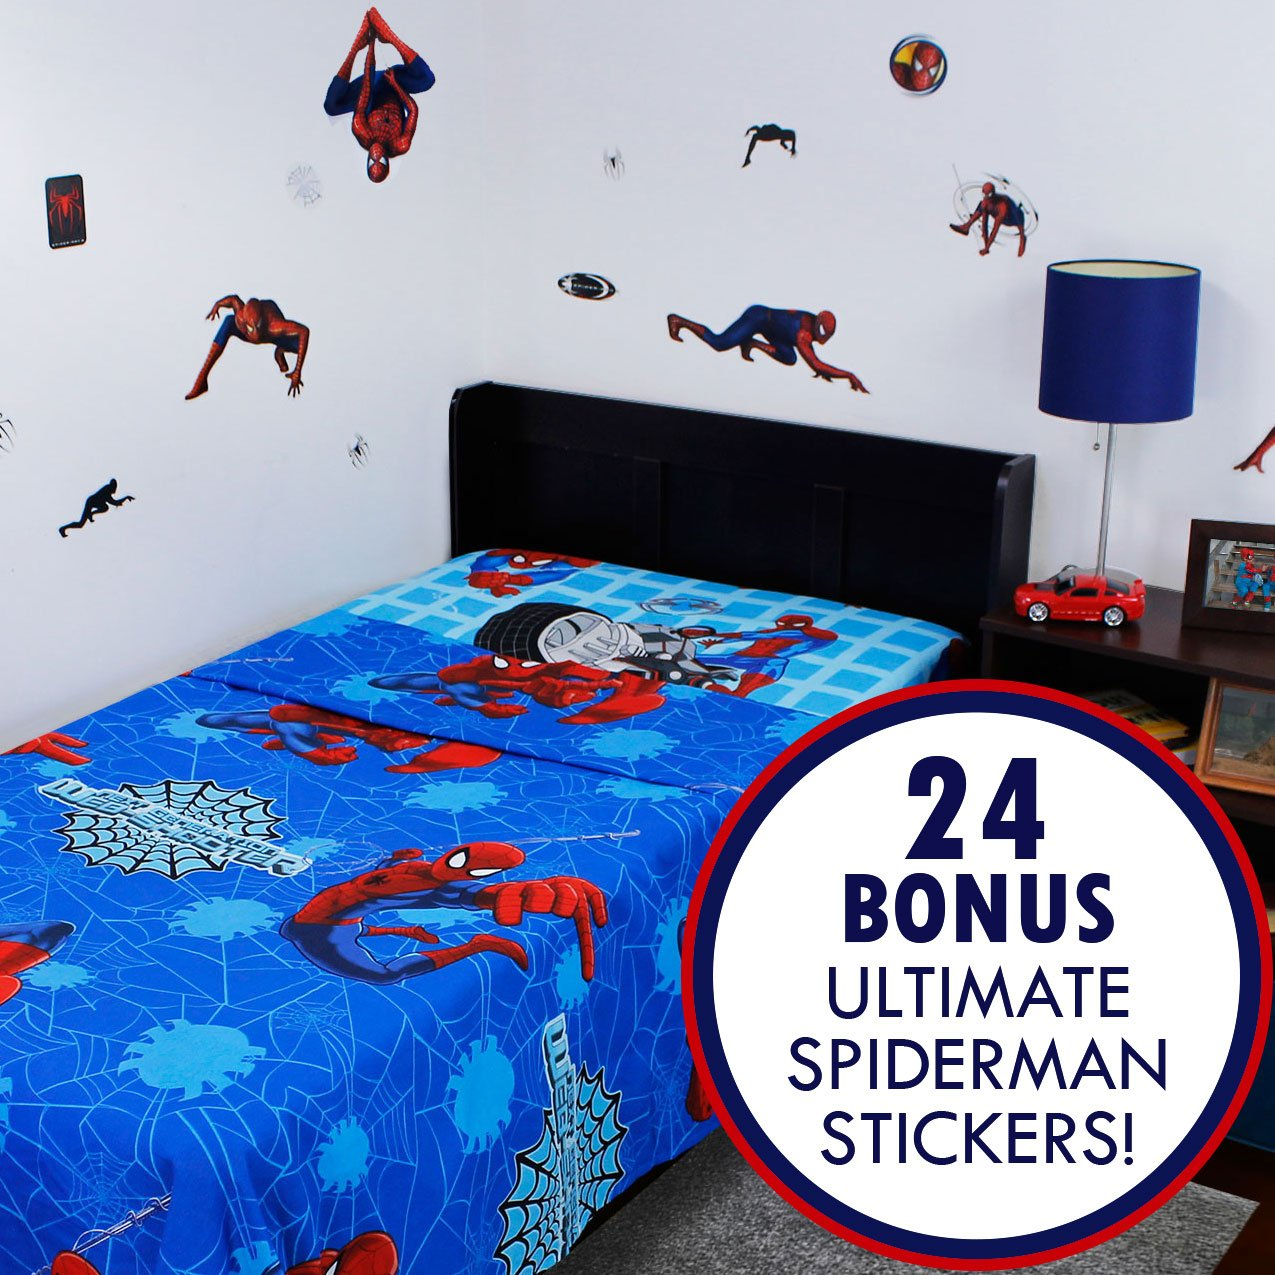 2pc Marvel Ultimate Spider-Man Twin Flat and Fitted Sheets Plus Bonus Sticker Set